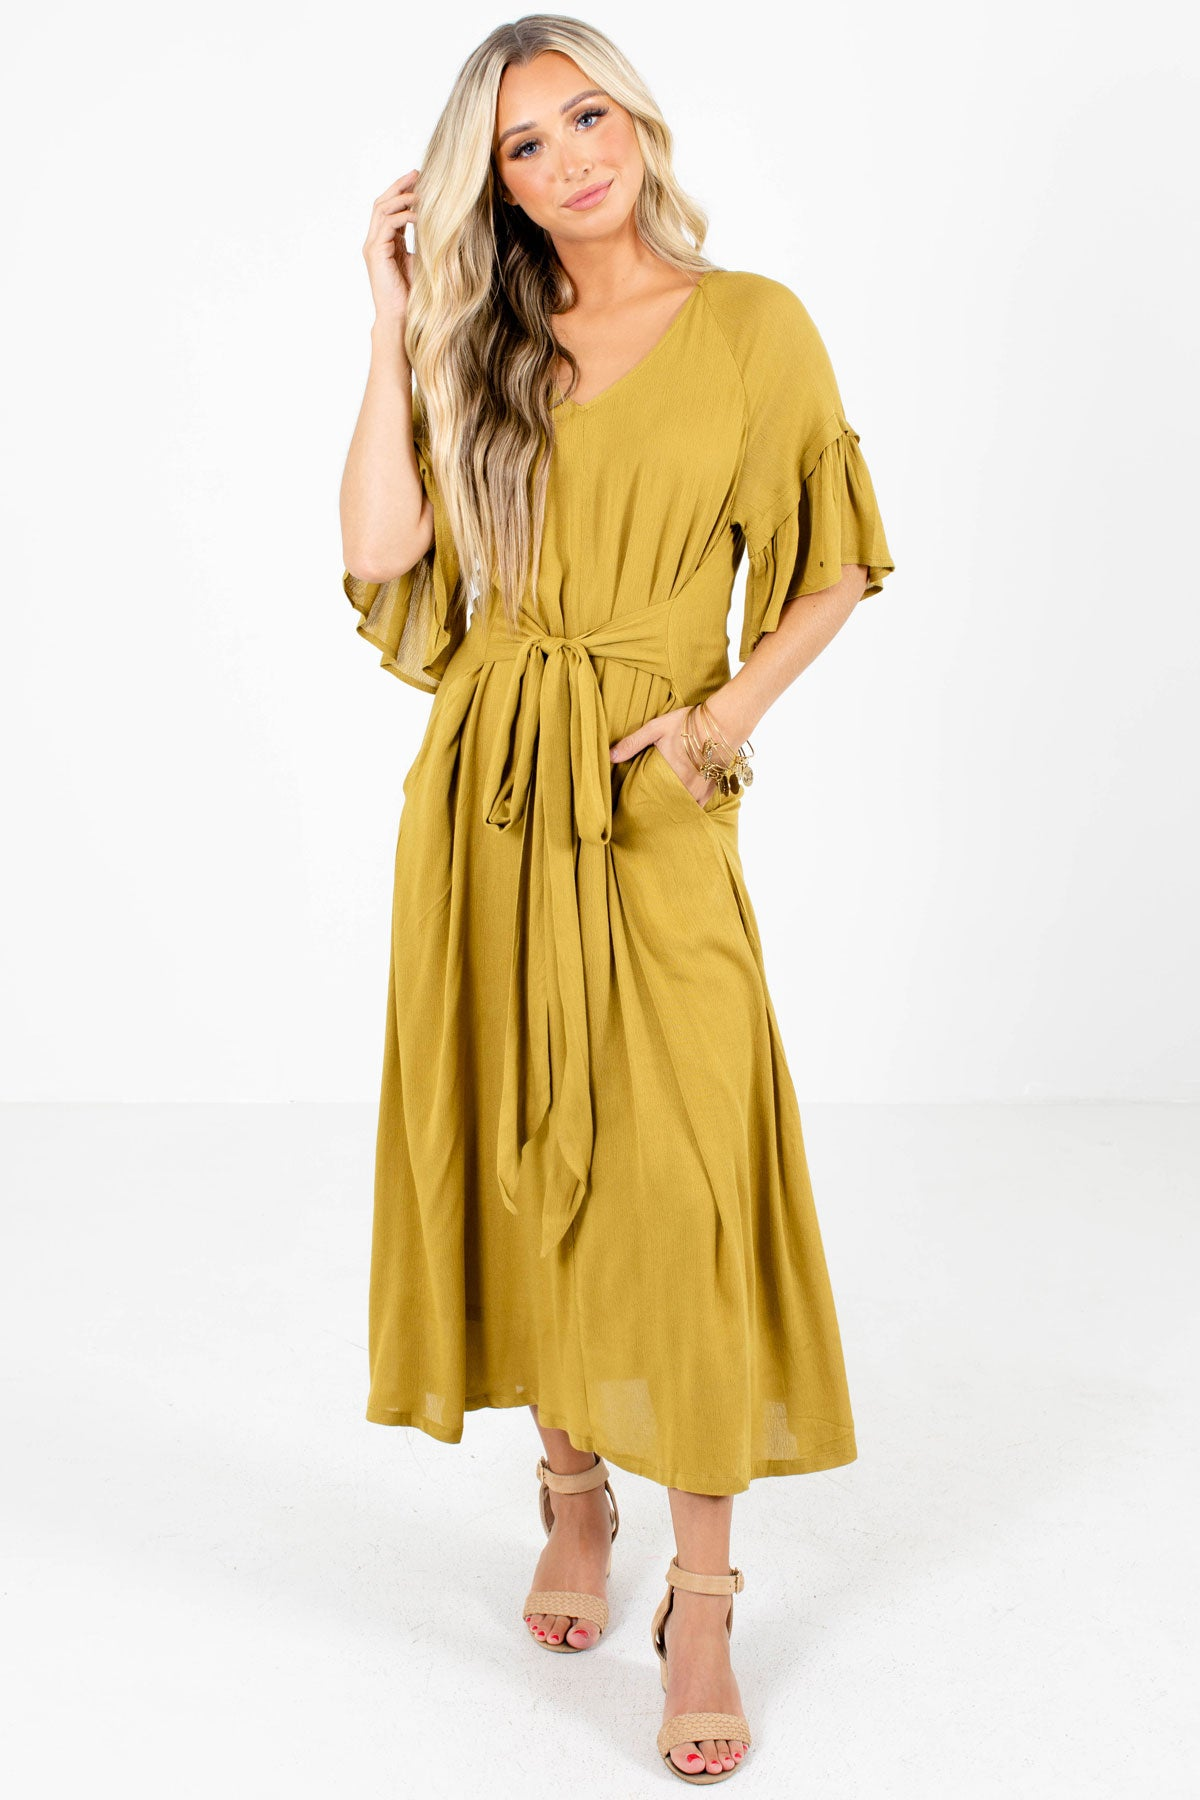 Yellow Boutique Maxi Dresses with Pockets for Women